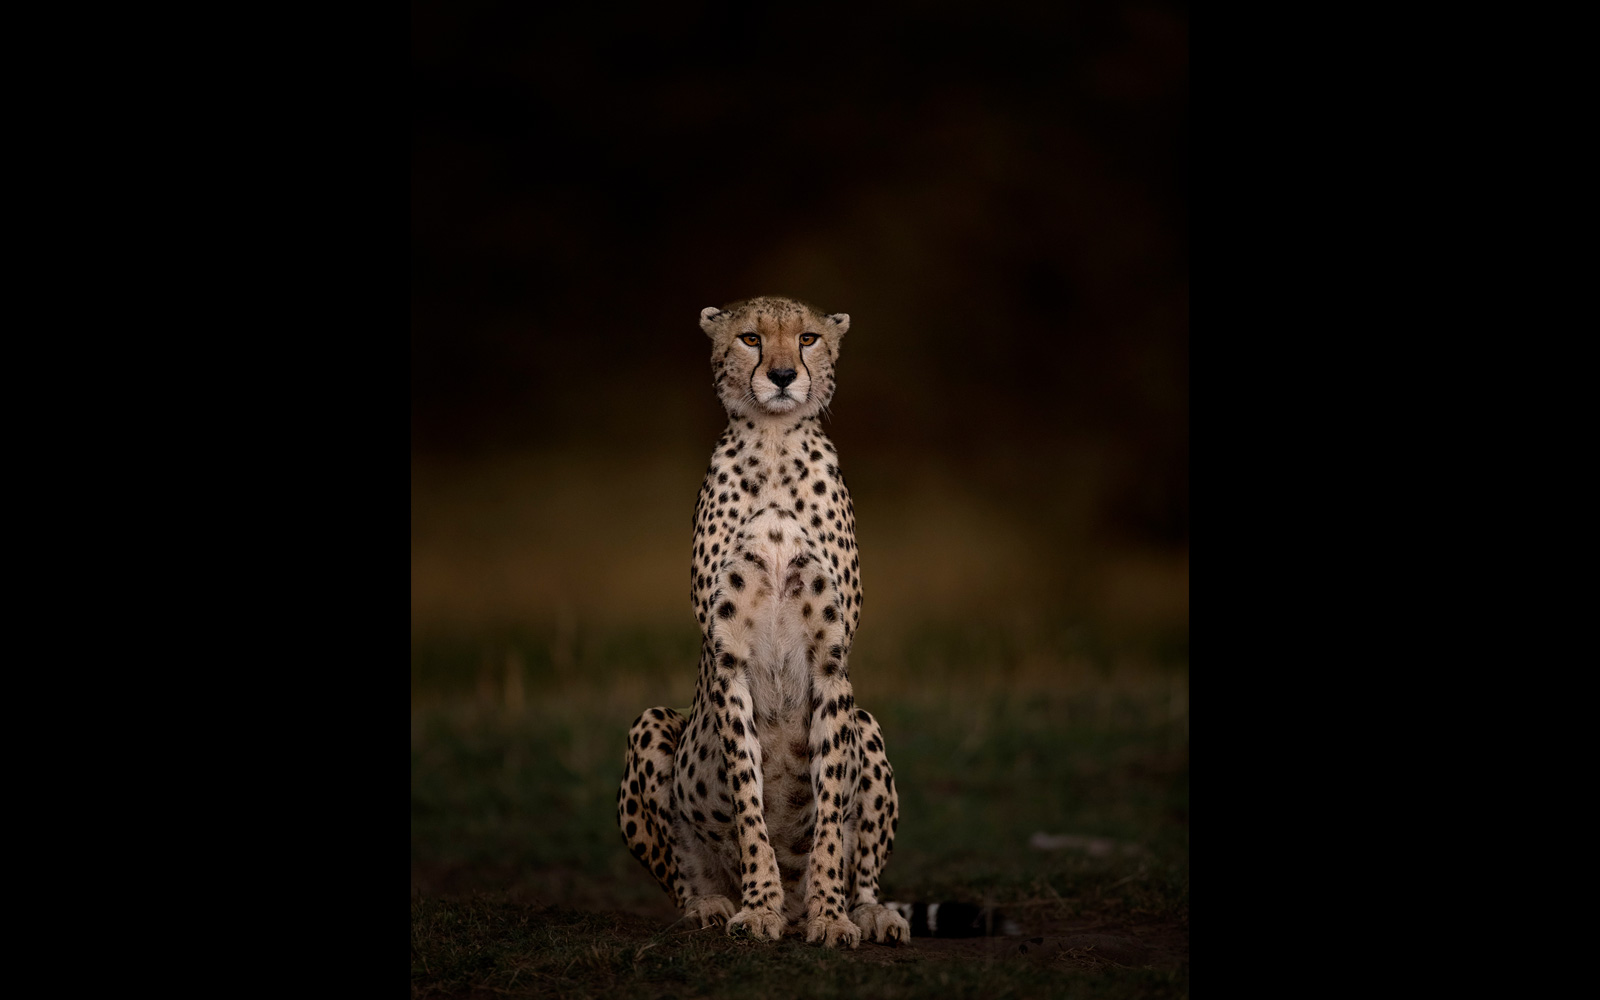 A female cheetah in the last of the evening light in Maasai Mara National Reserve, Kenya © Andy Howe